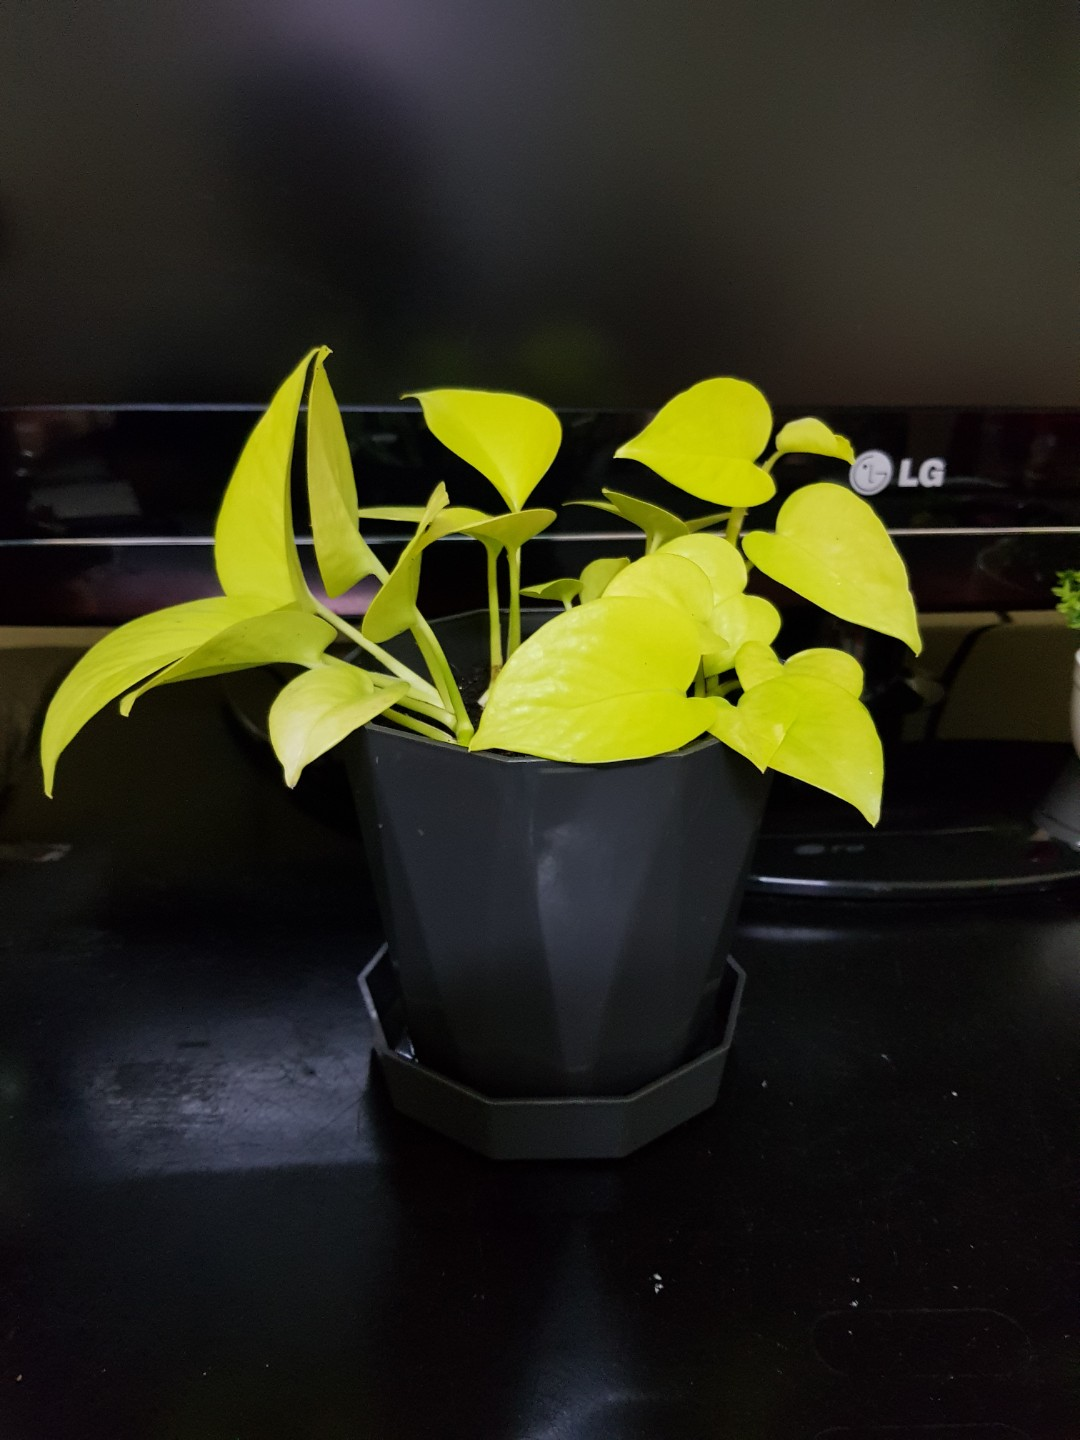 Neon Money Plant Indoor Desktop Xmas Gift Birthday